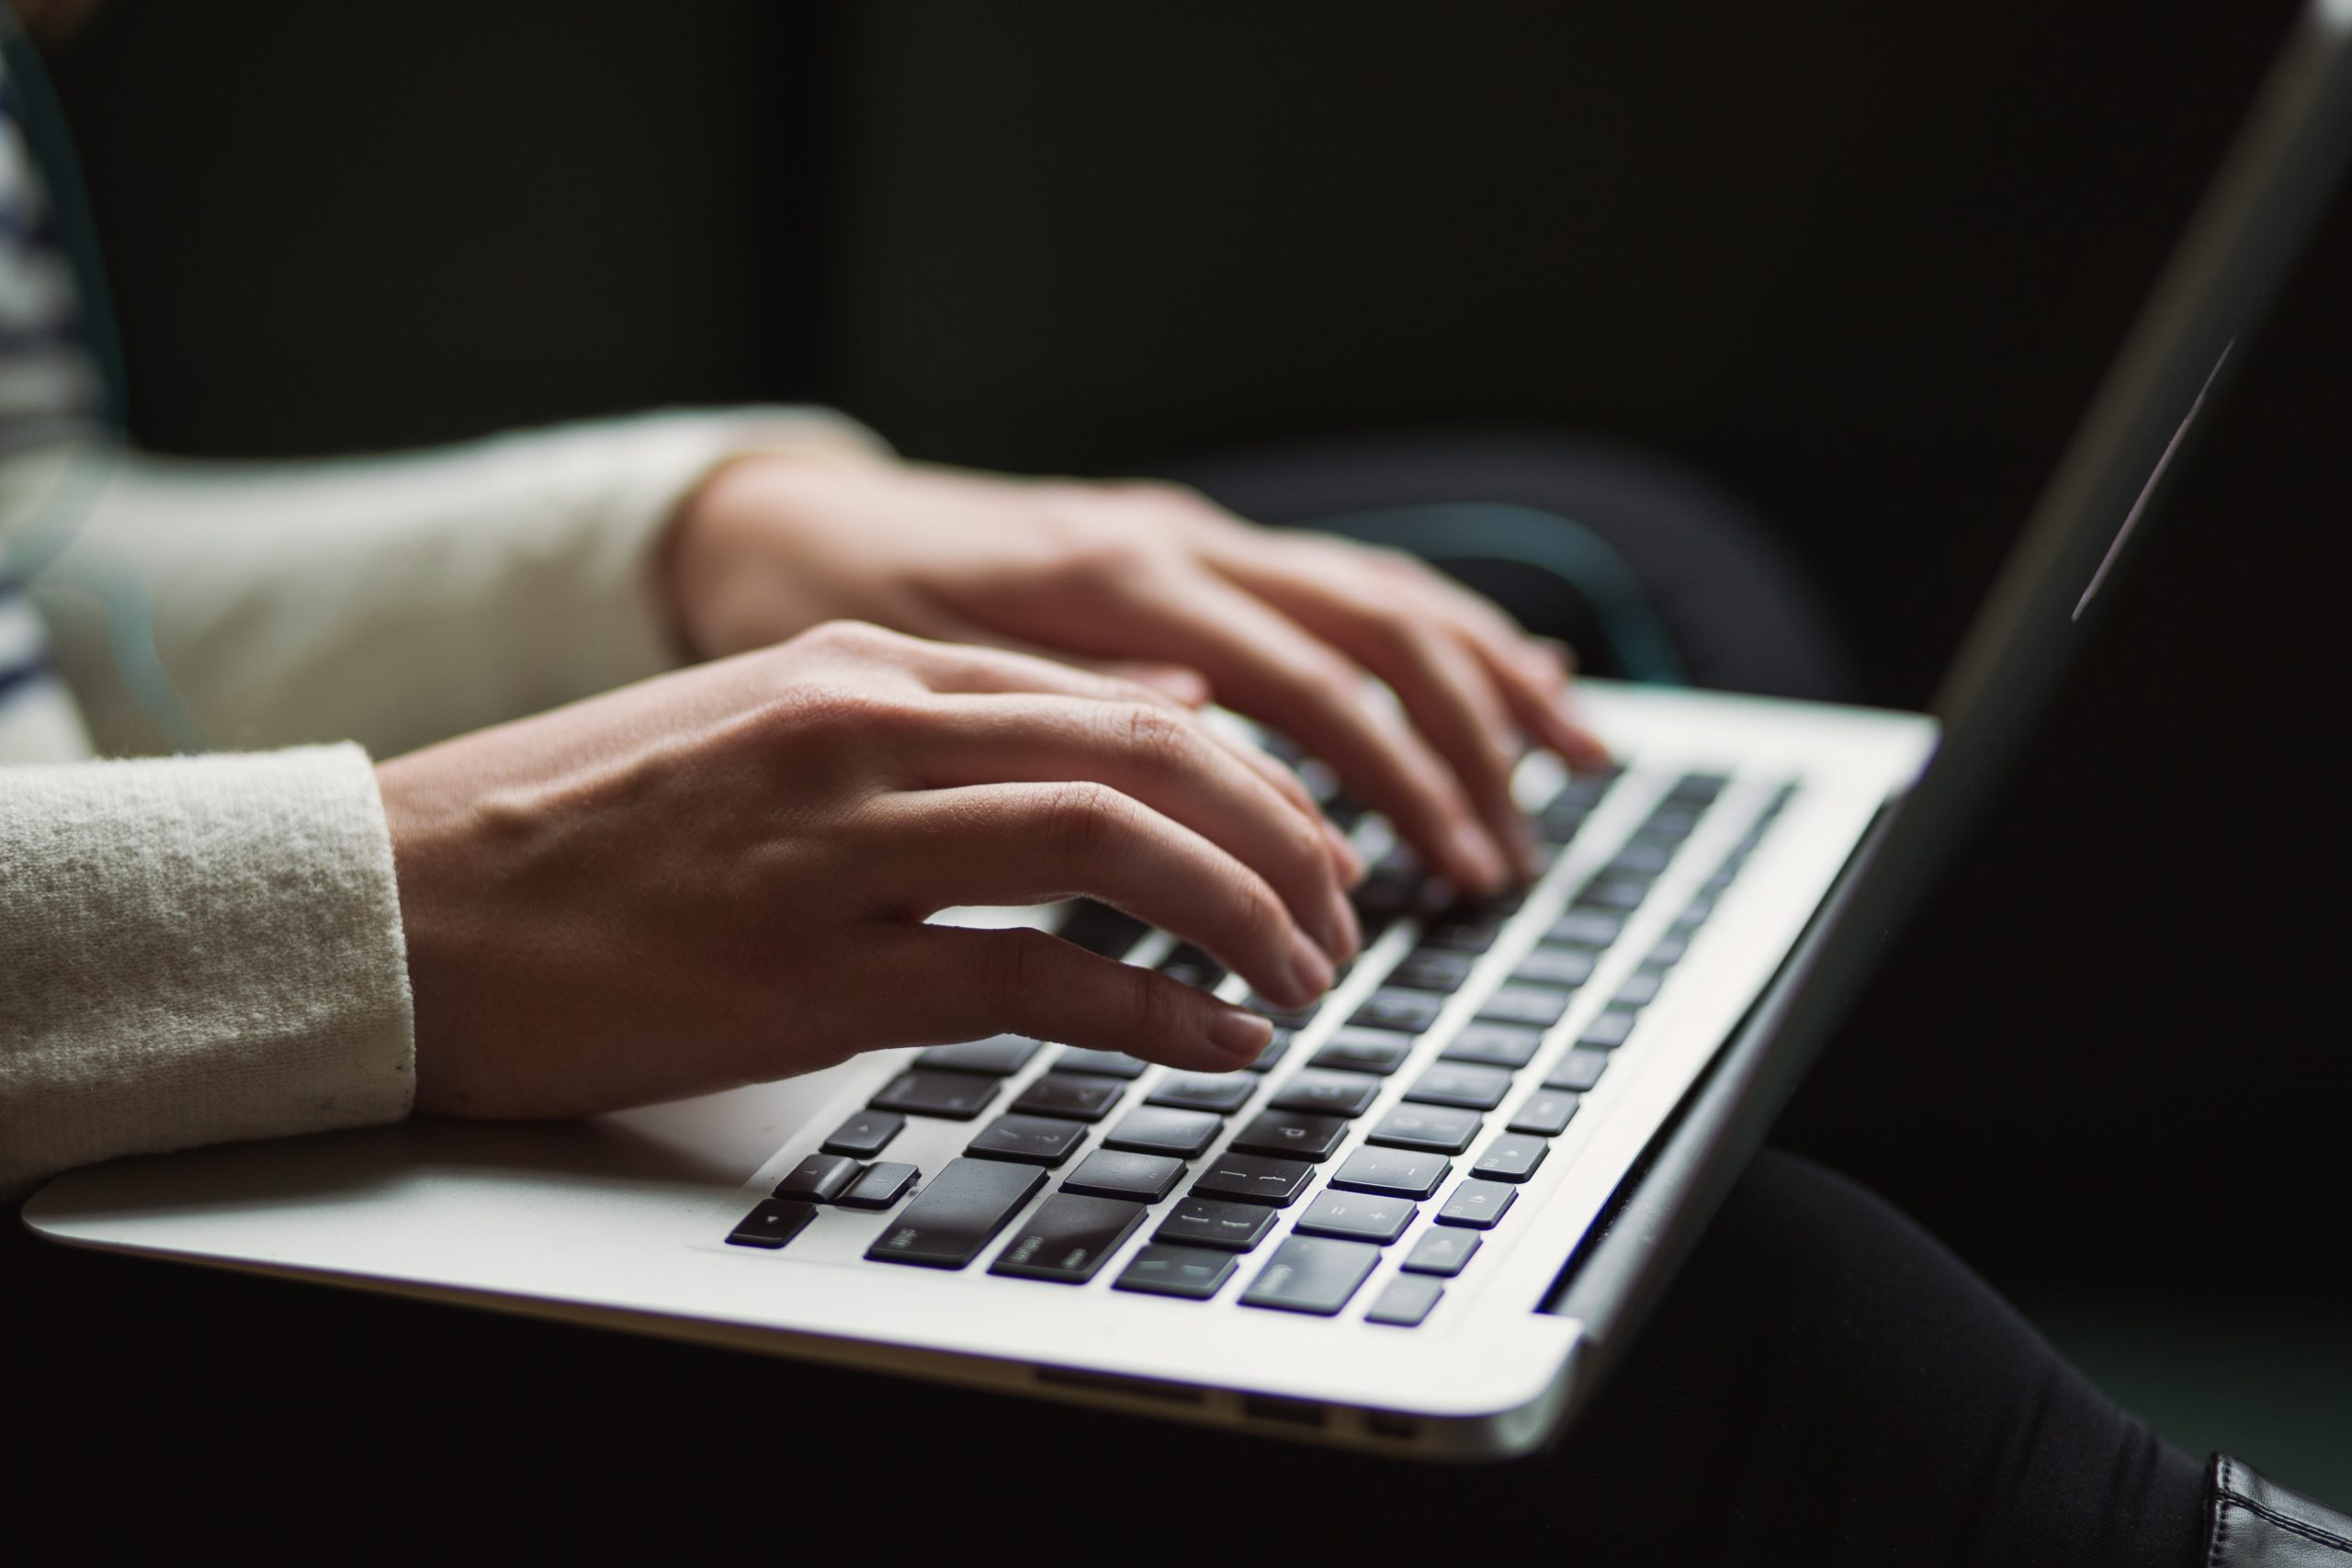 A person typing on a Macbook laptop